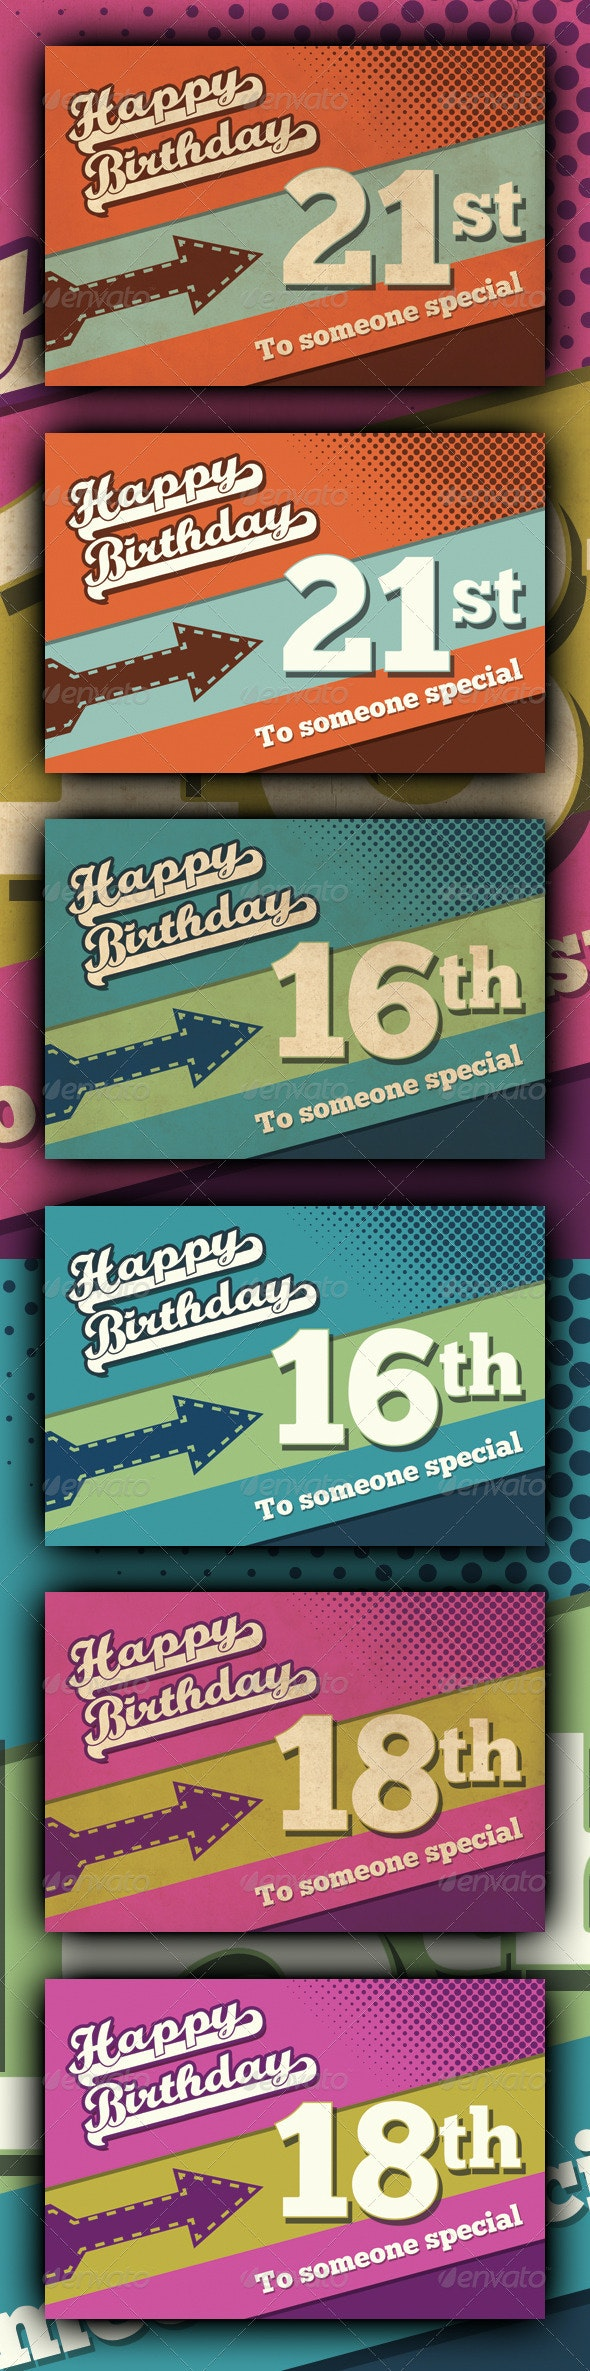 Retro Happy Birthday Card V1 - Birthday Greeting Cards